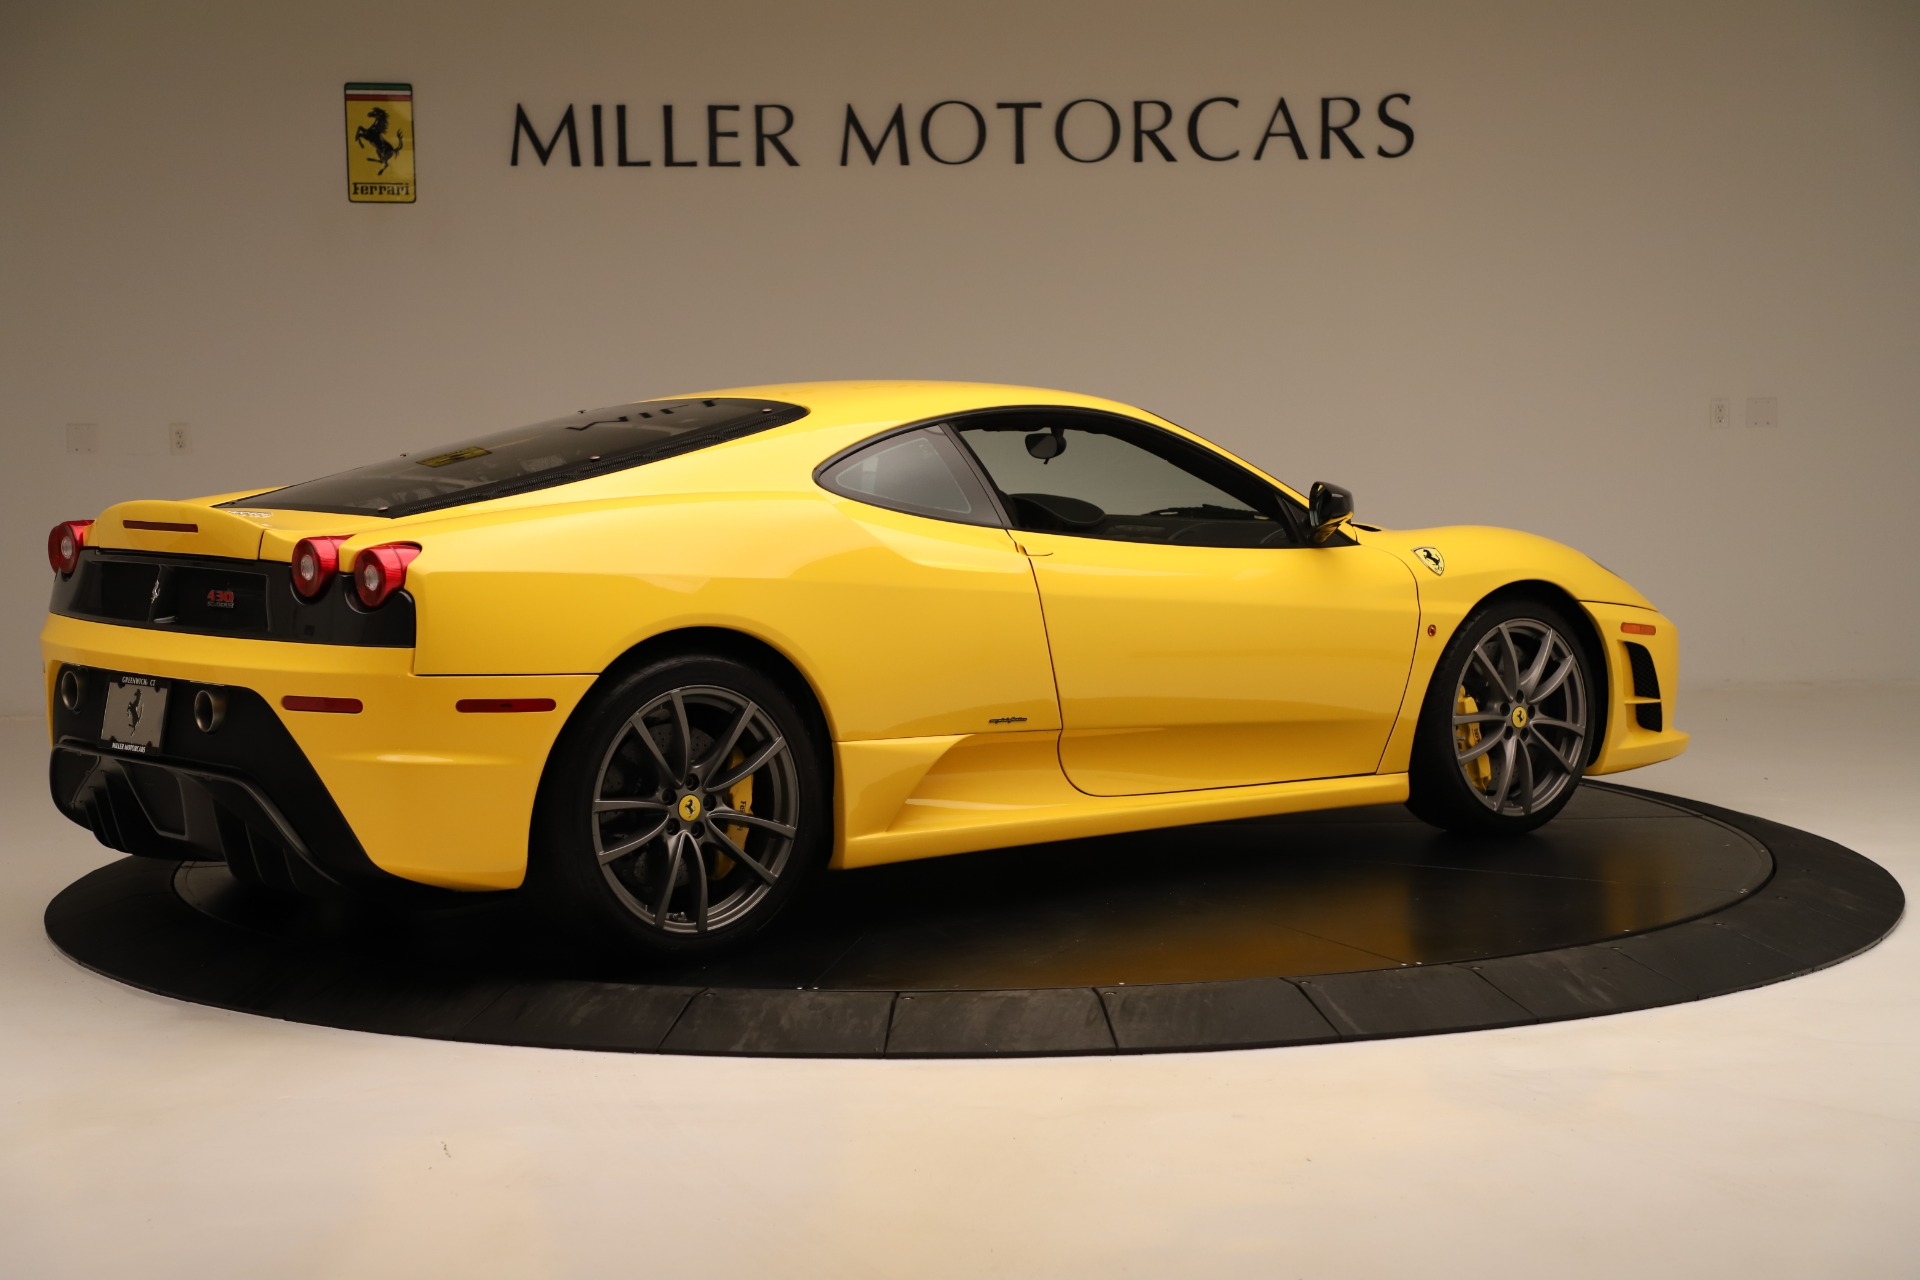 Used 2008 Ferrari F430 Scuderia For Sale In Greenwich, CT 3319_p8